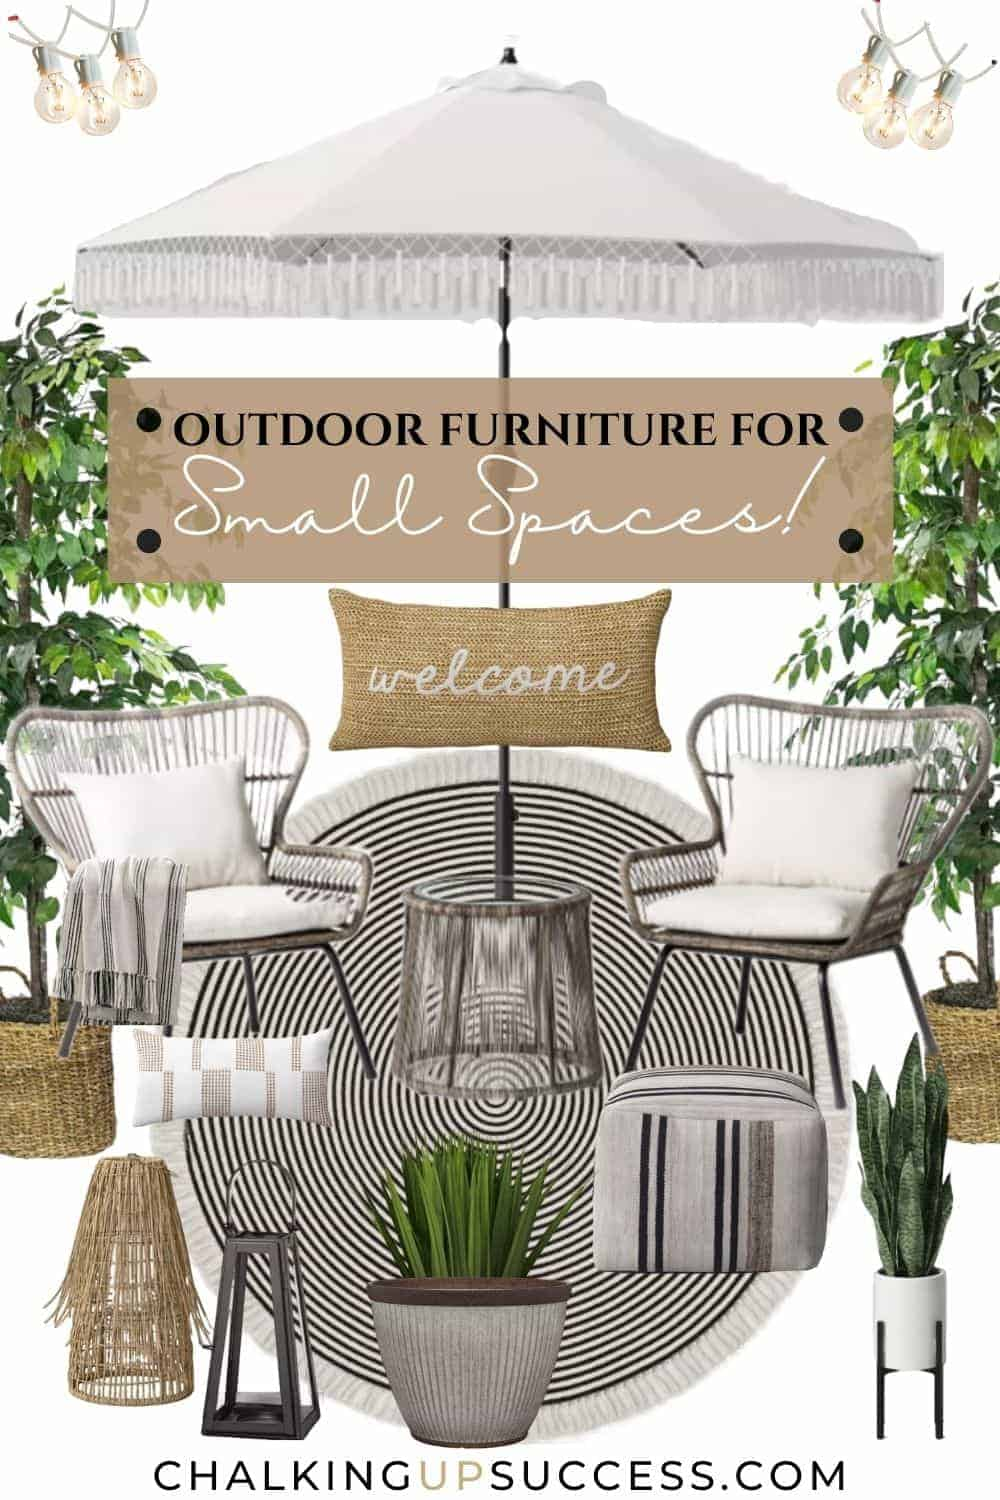 This outdoor furniture for small spaces includes a conversation seating set with table in grey rattan for a boho look. Over the seating area is a white sun umbrella with a white fringe. The round black and off white rug with concentric circles complements the boho style.